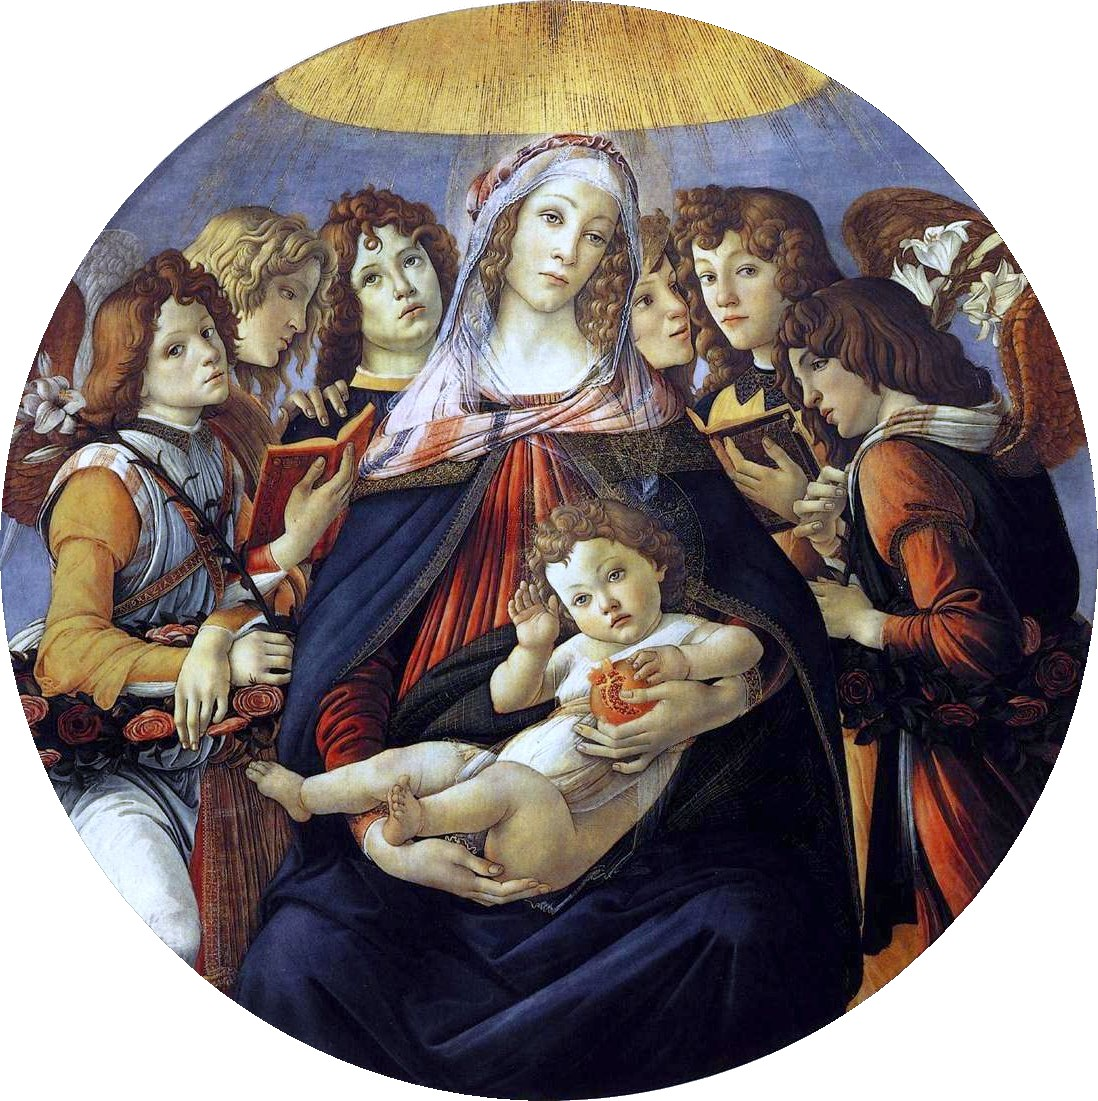 Madonna of the Pomegranate (Madonna della Melagrana) by Sandro Botticelli, circa 1487